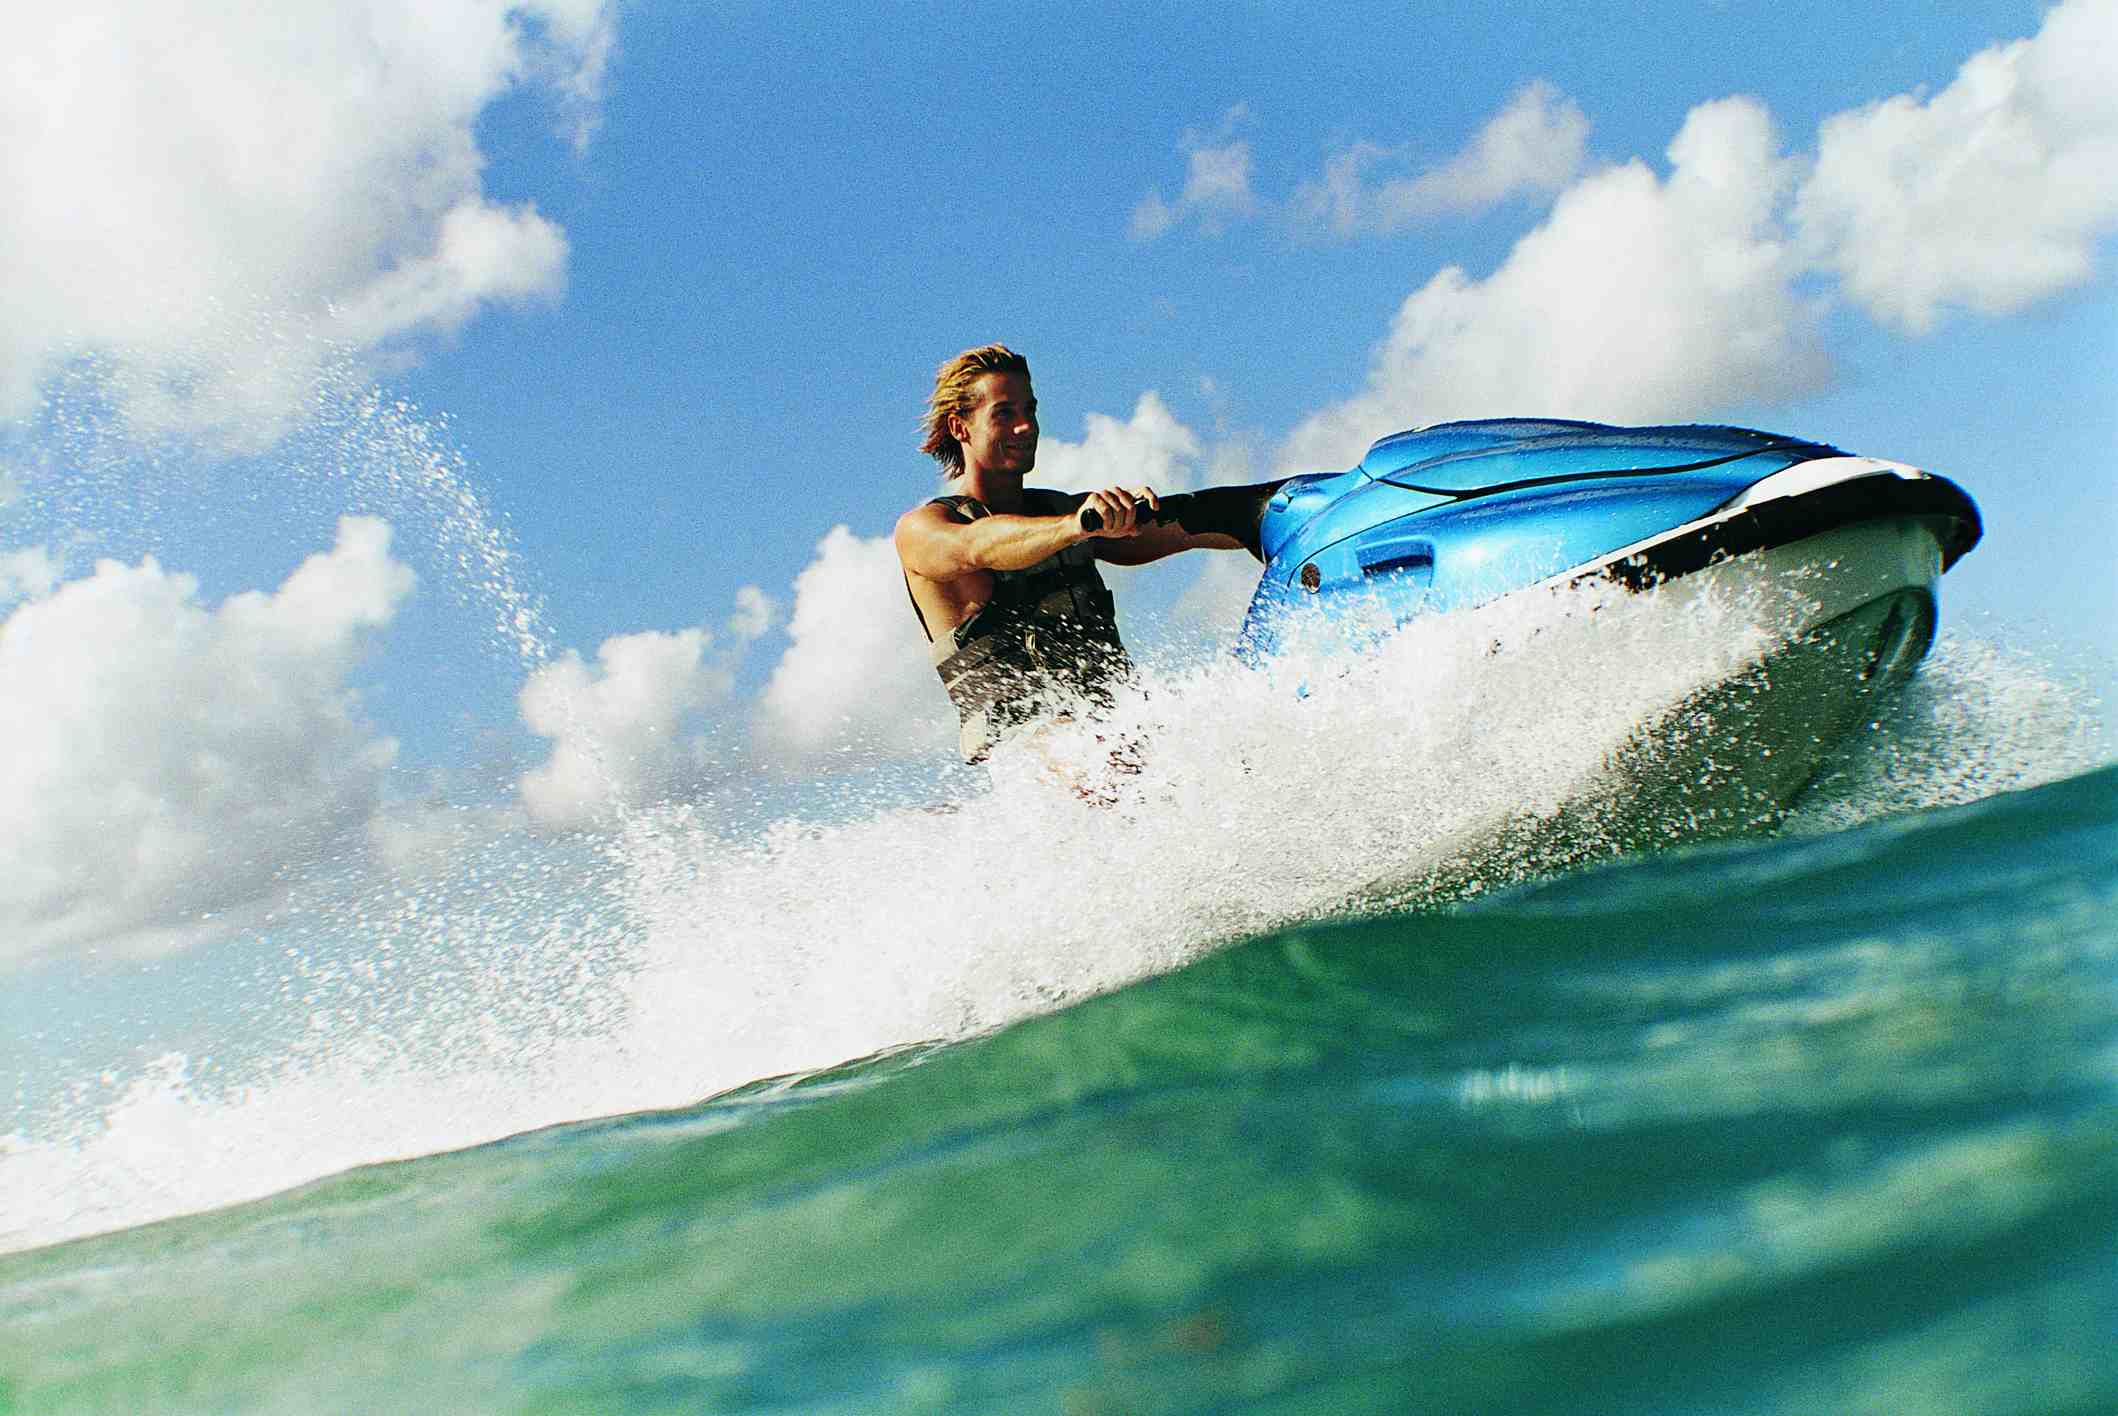 5 Reasons Why Wakeboarders Should Buy a PWC or Jet Ski